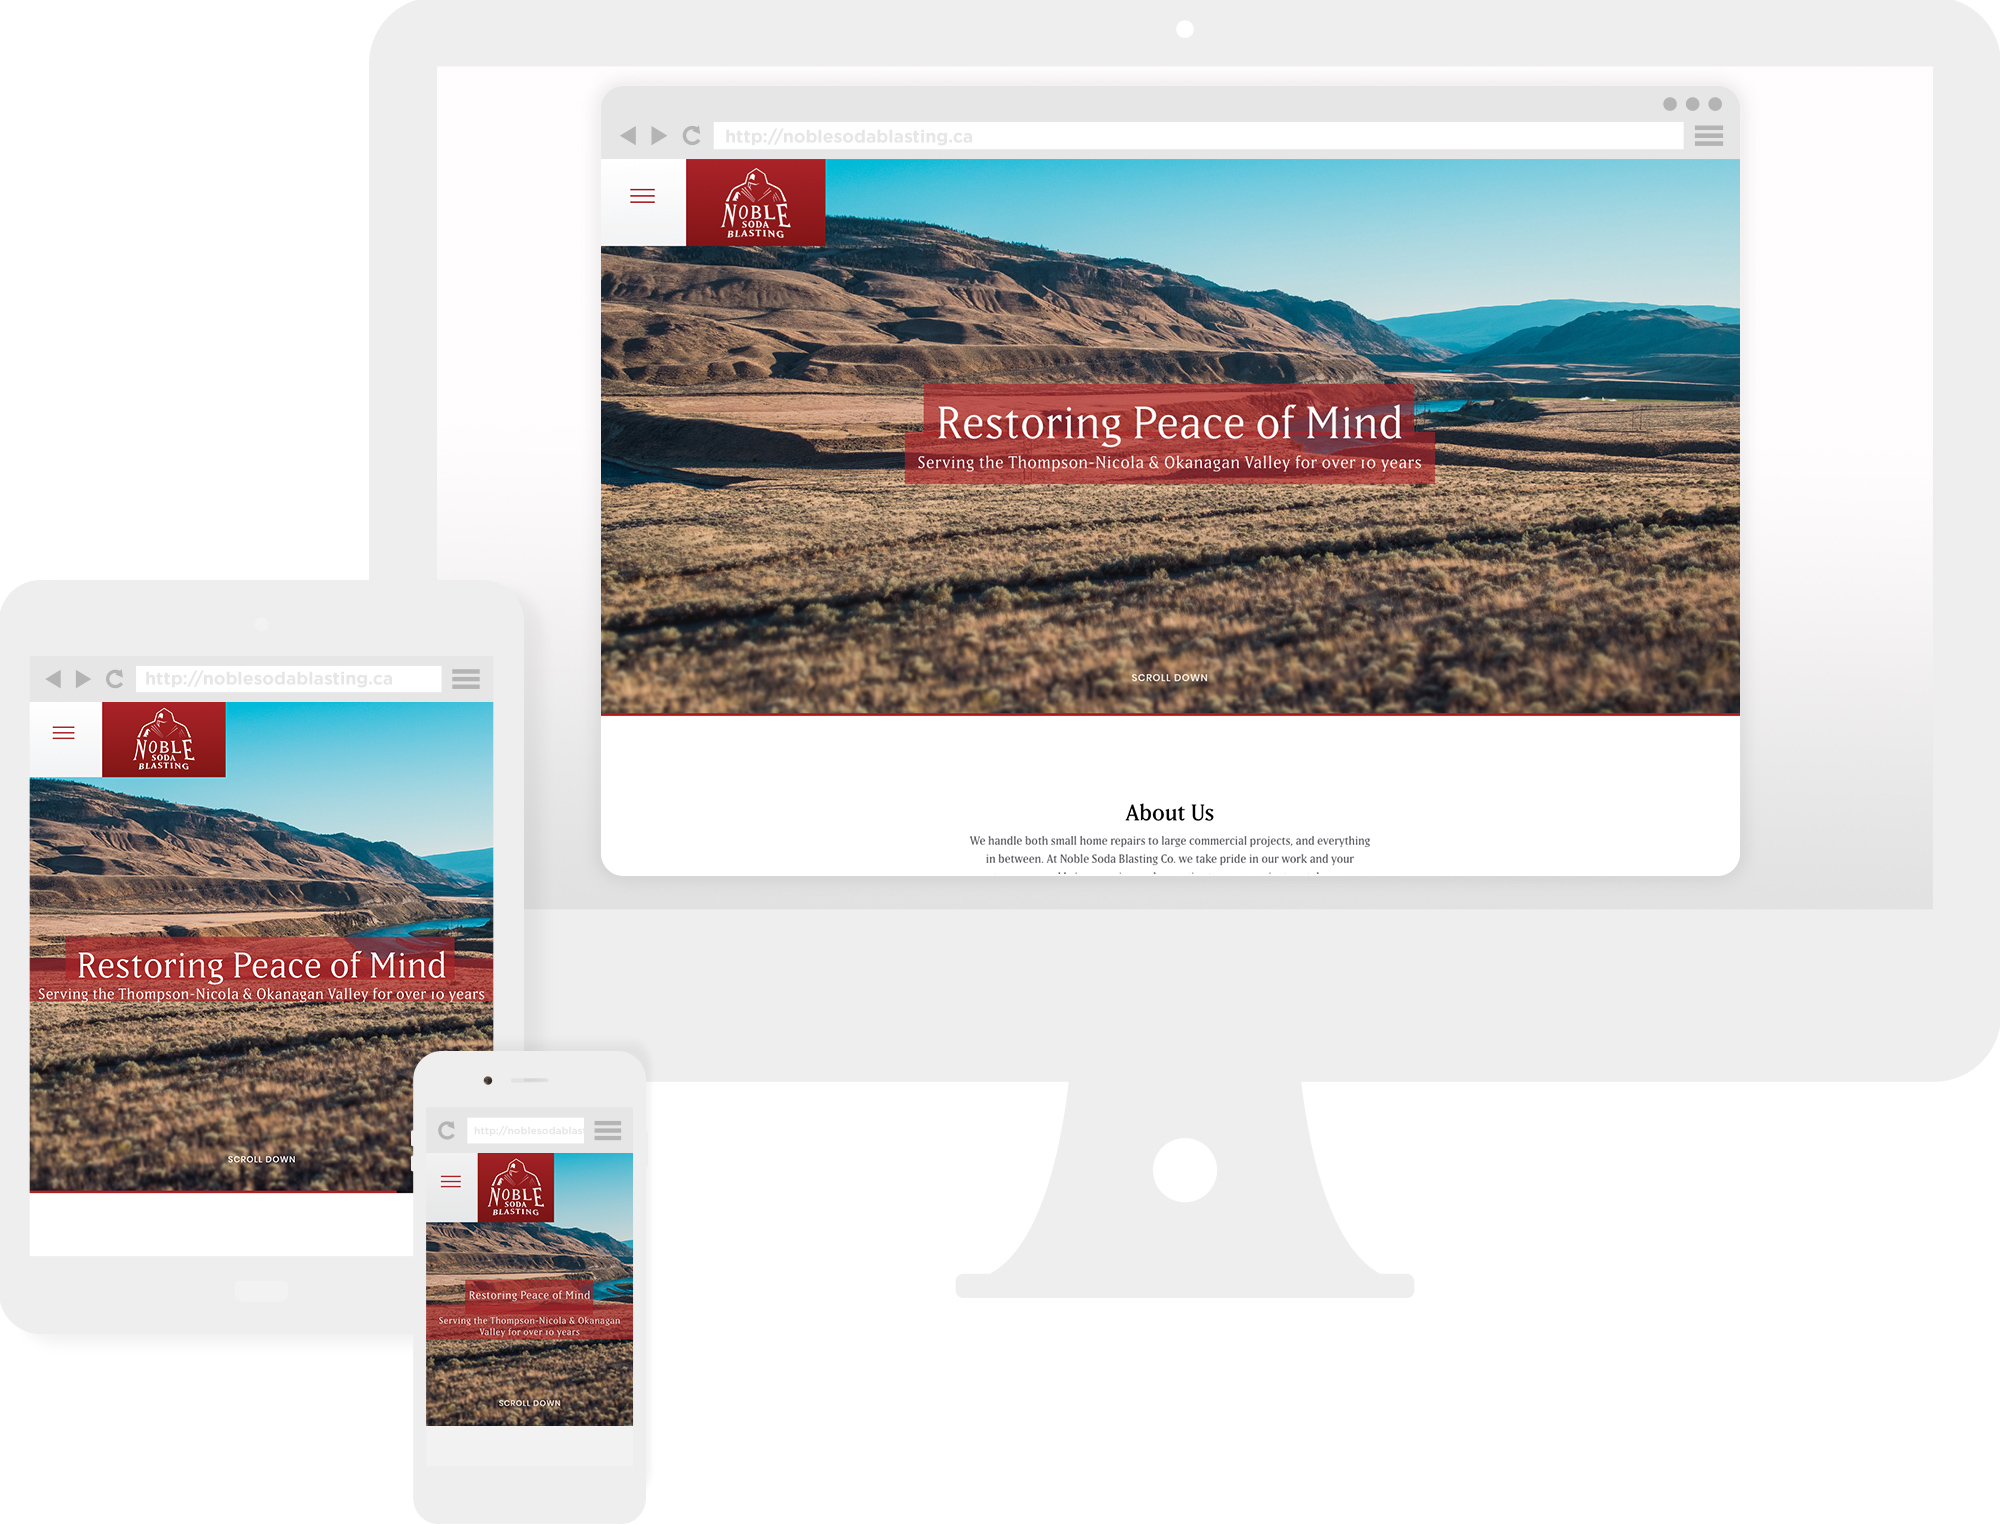 Preview of new website showing on desktop, tablet, and mobile versions.